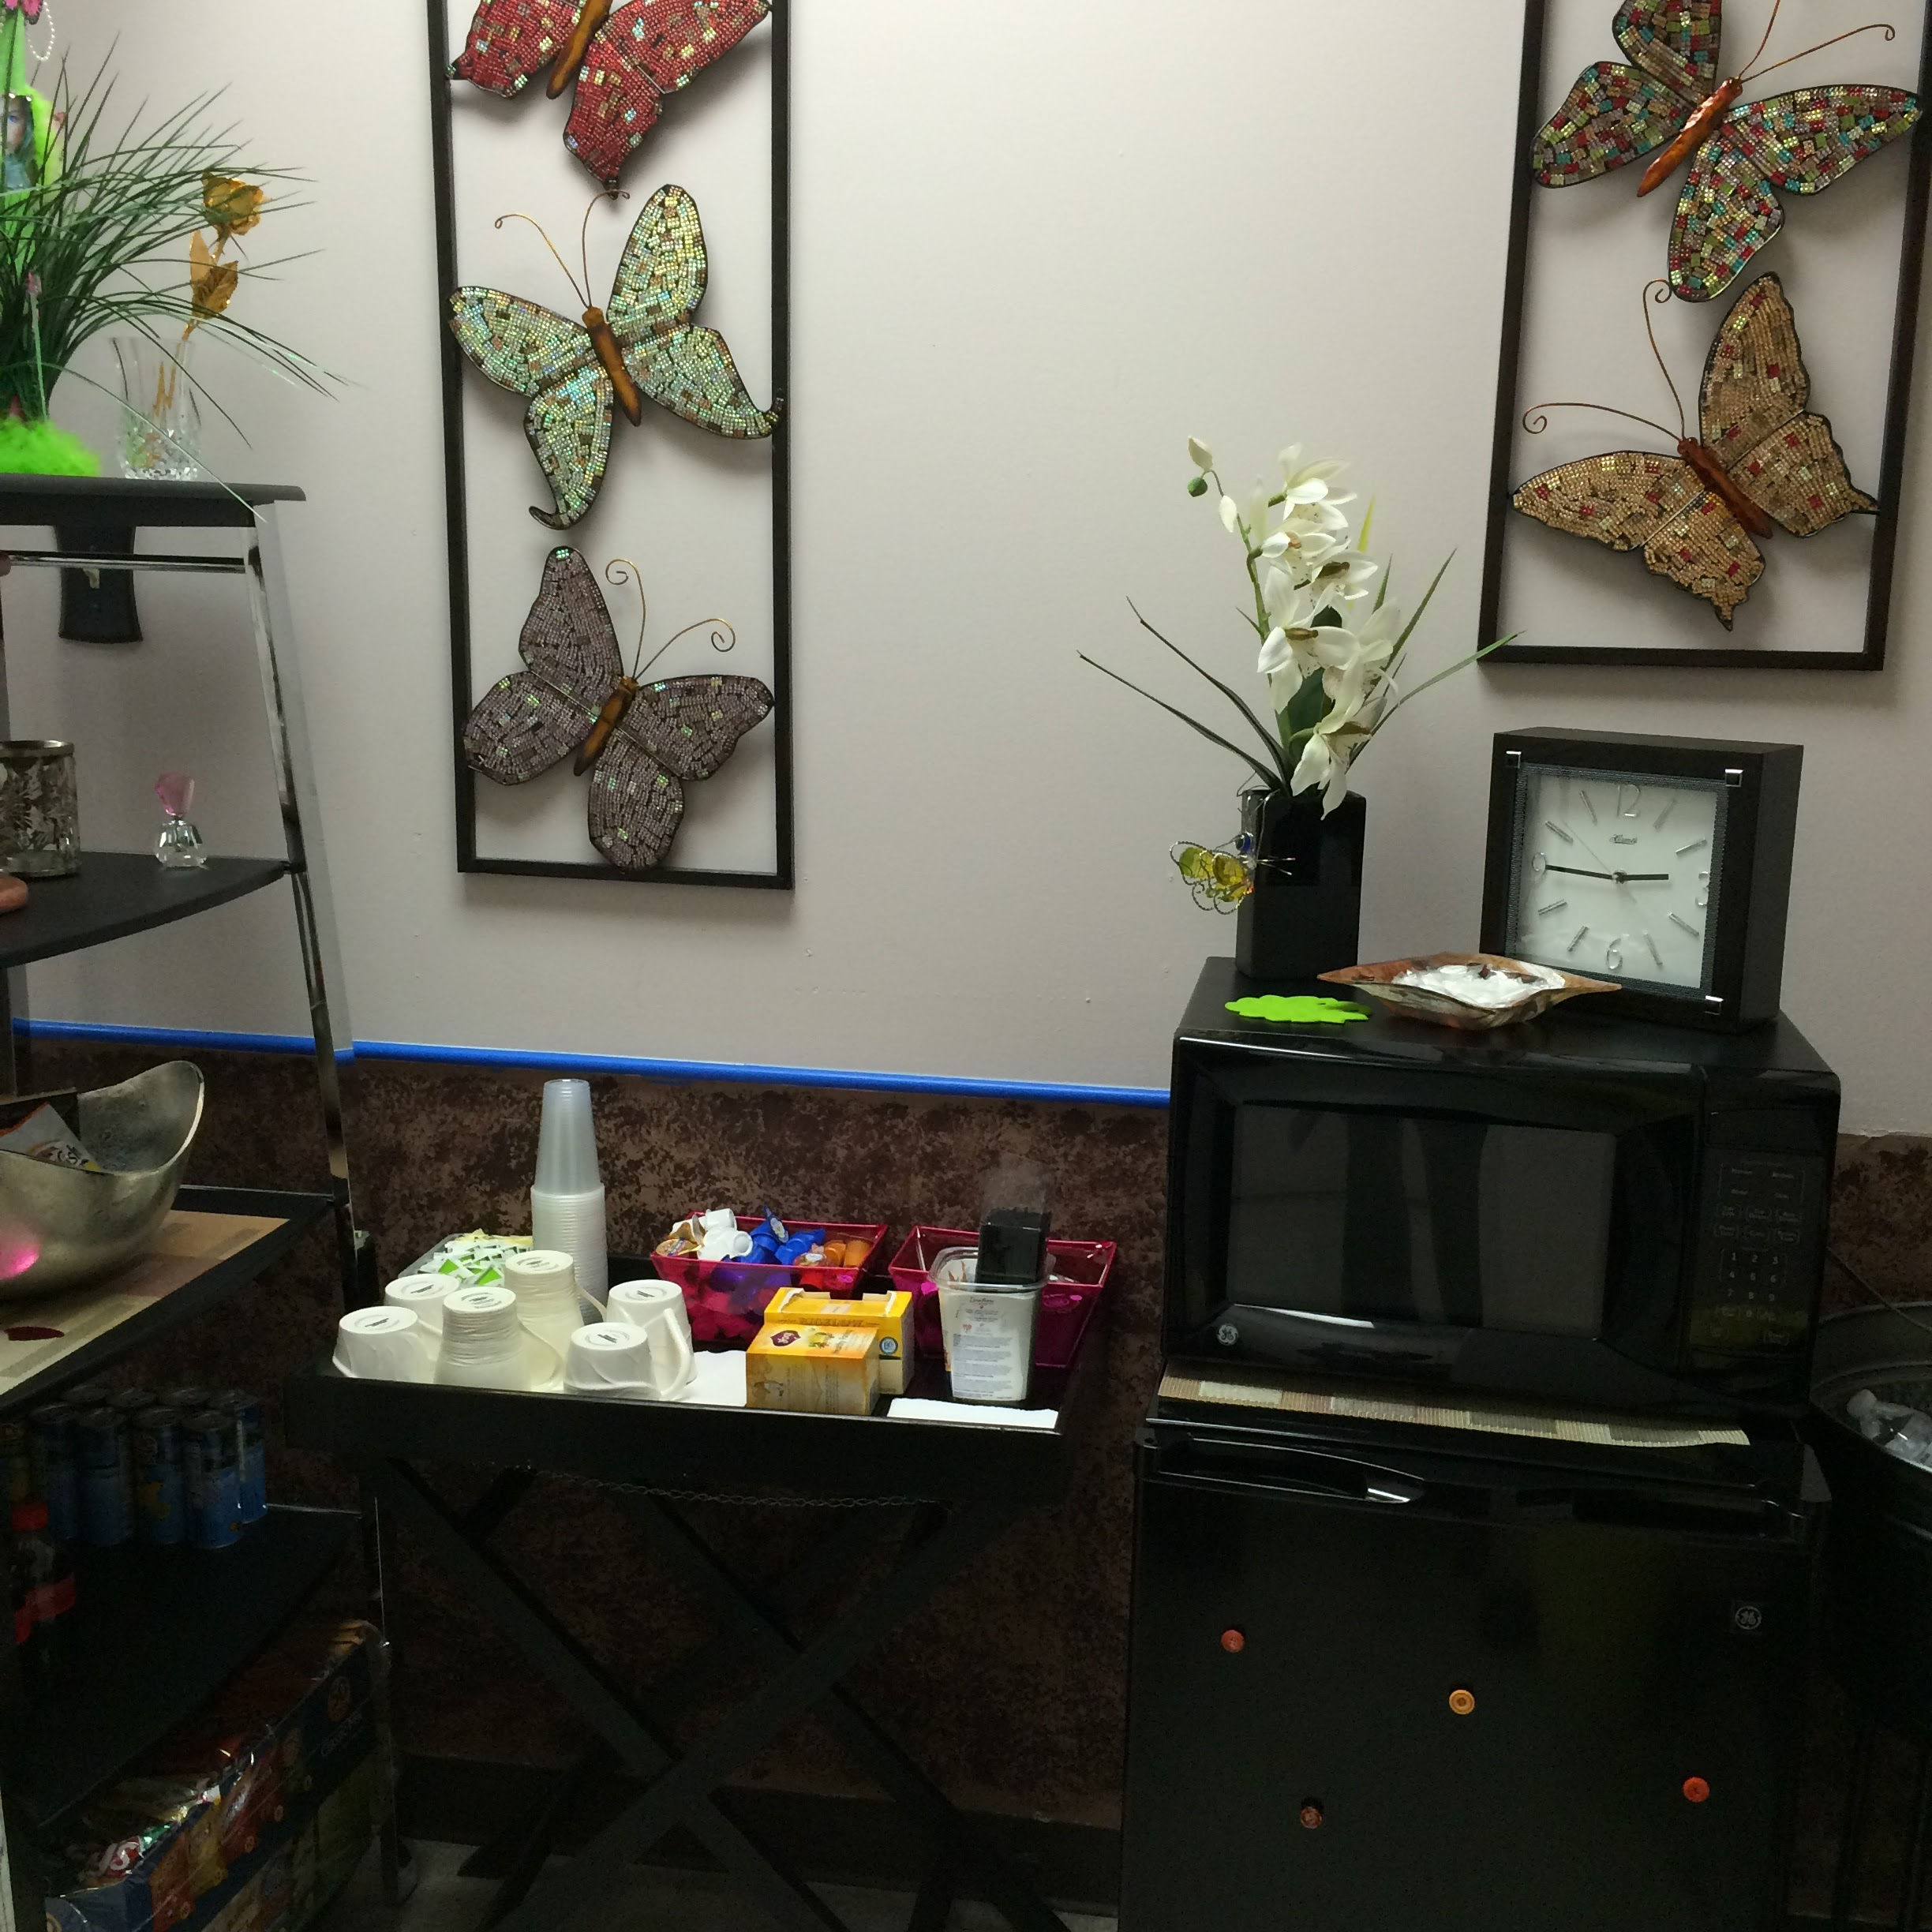 Houston Wellness Boutique image